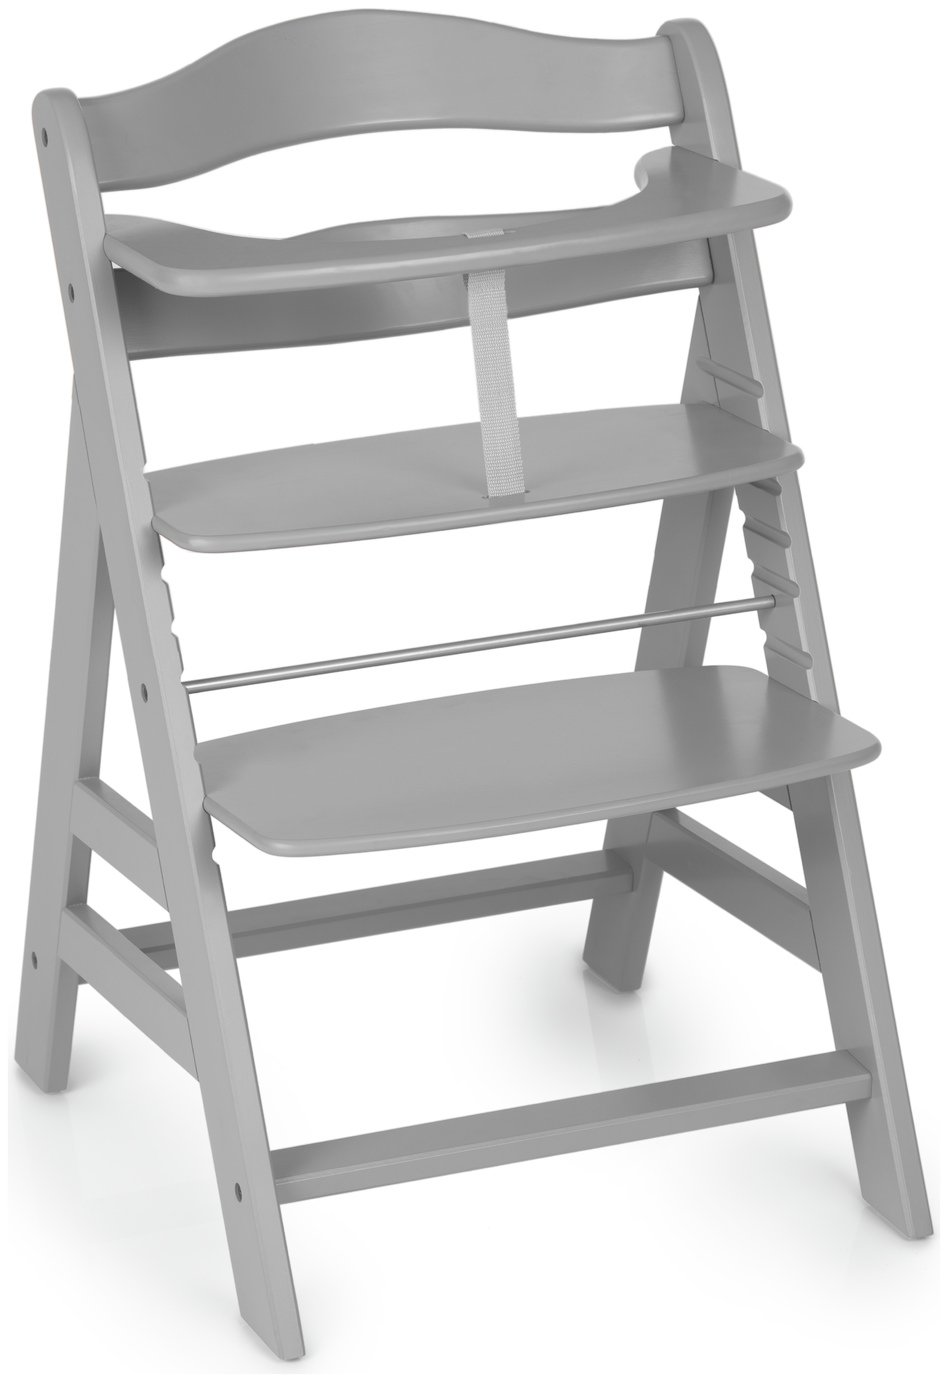 Image of Hauck Alpha+ Wooden Highchair- Grey